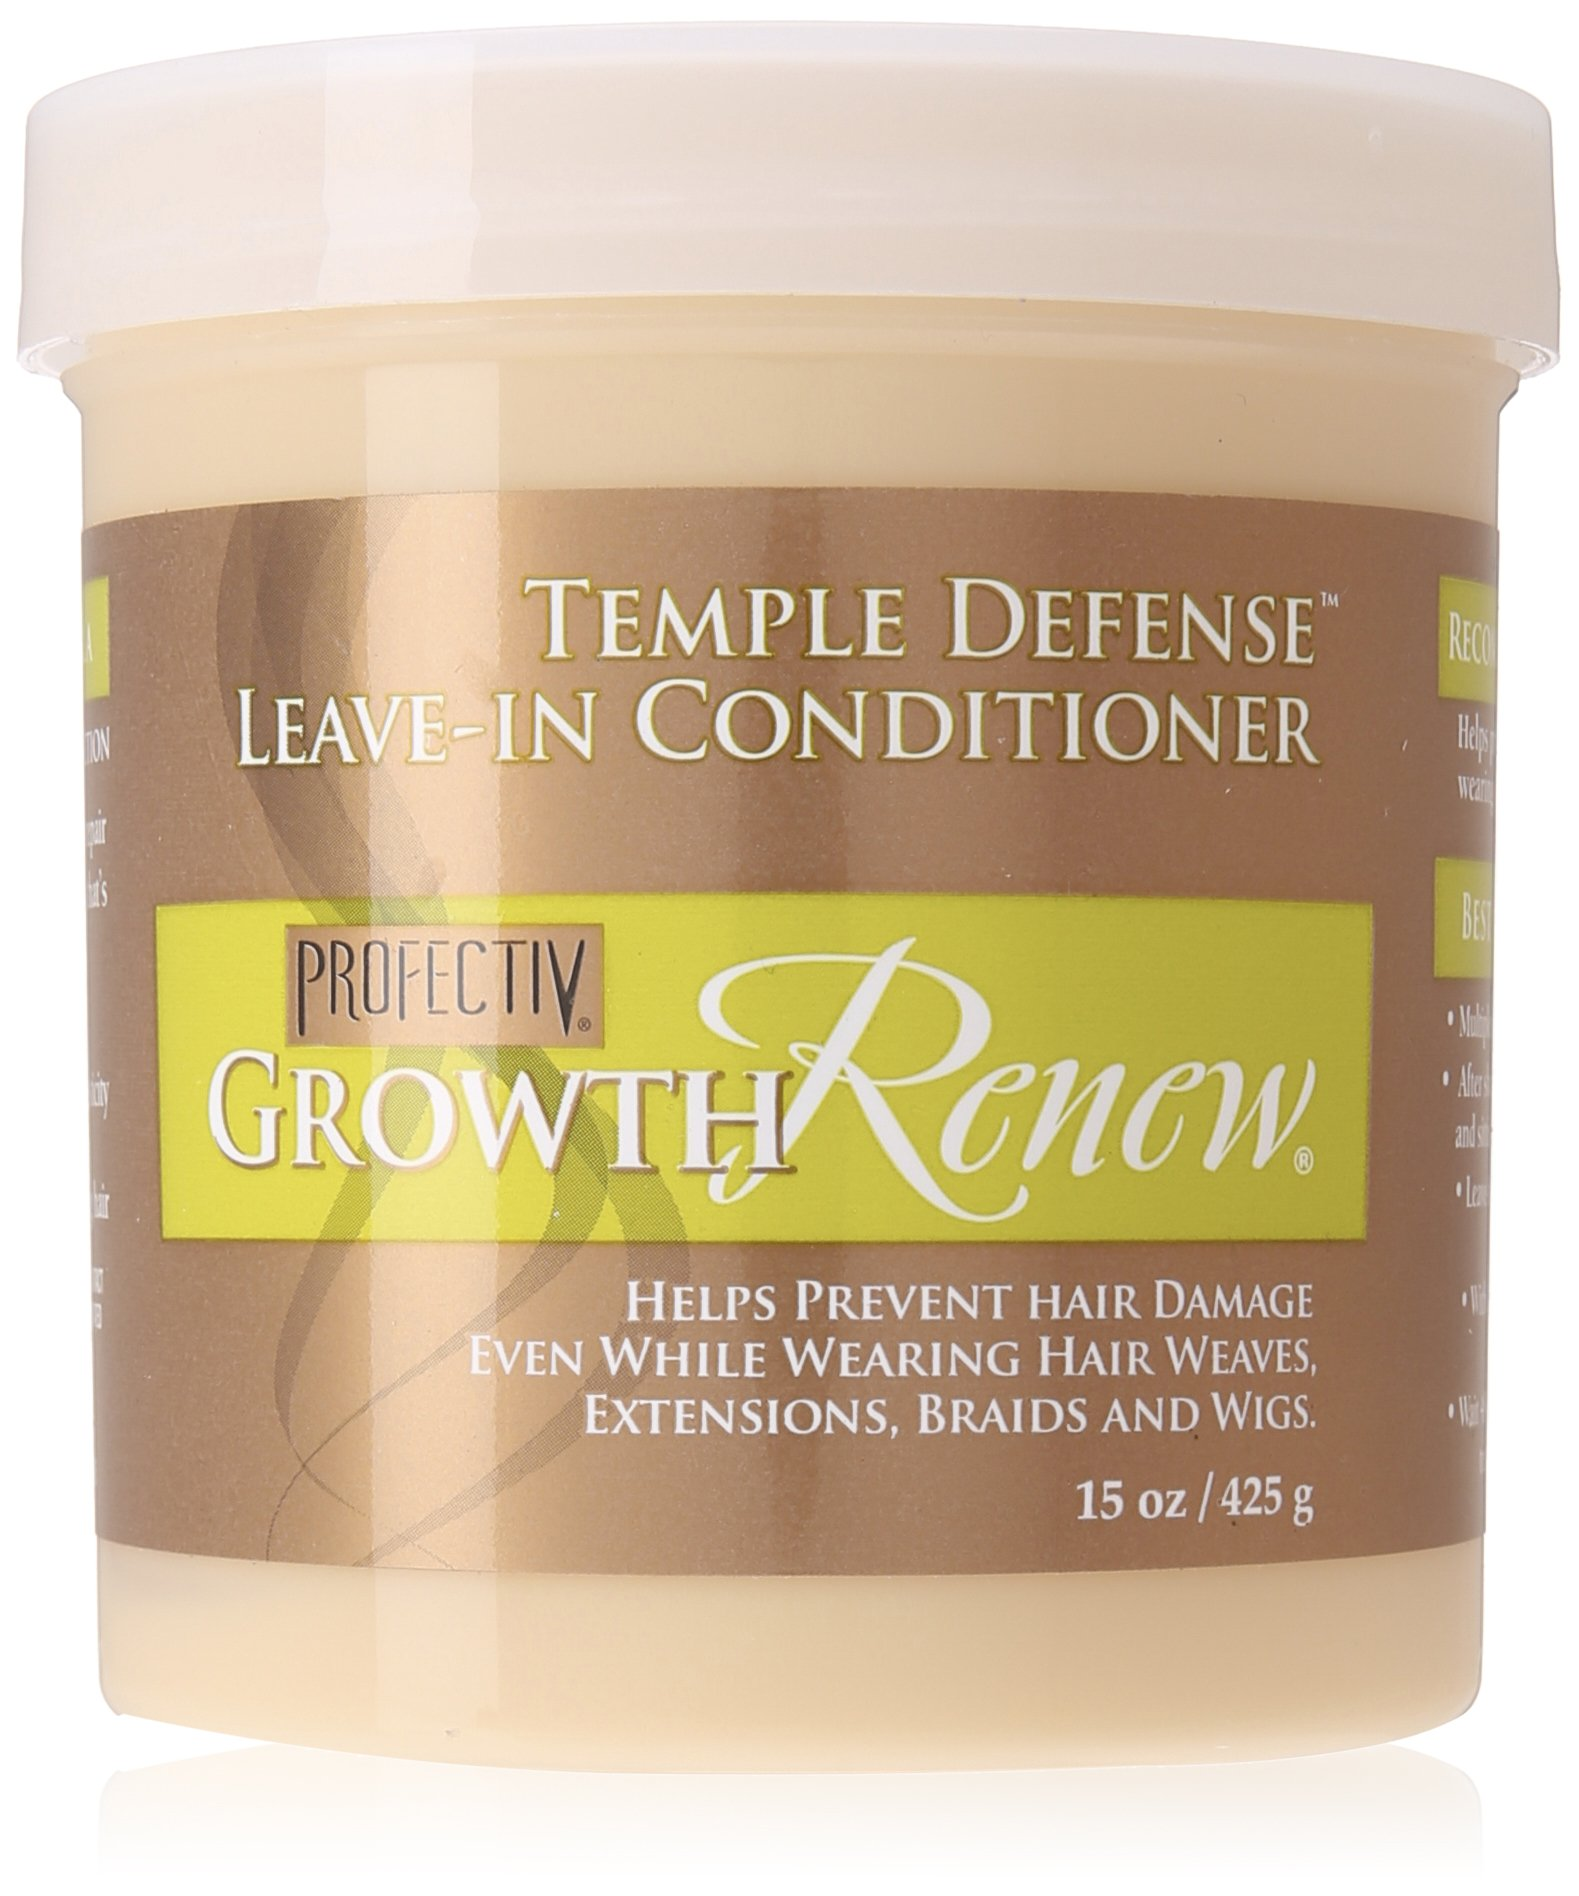 Profectiv Growth Renew Temple Defense Leave In Conditioner, 15 Ounce